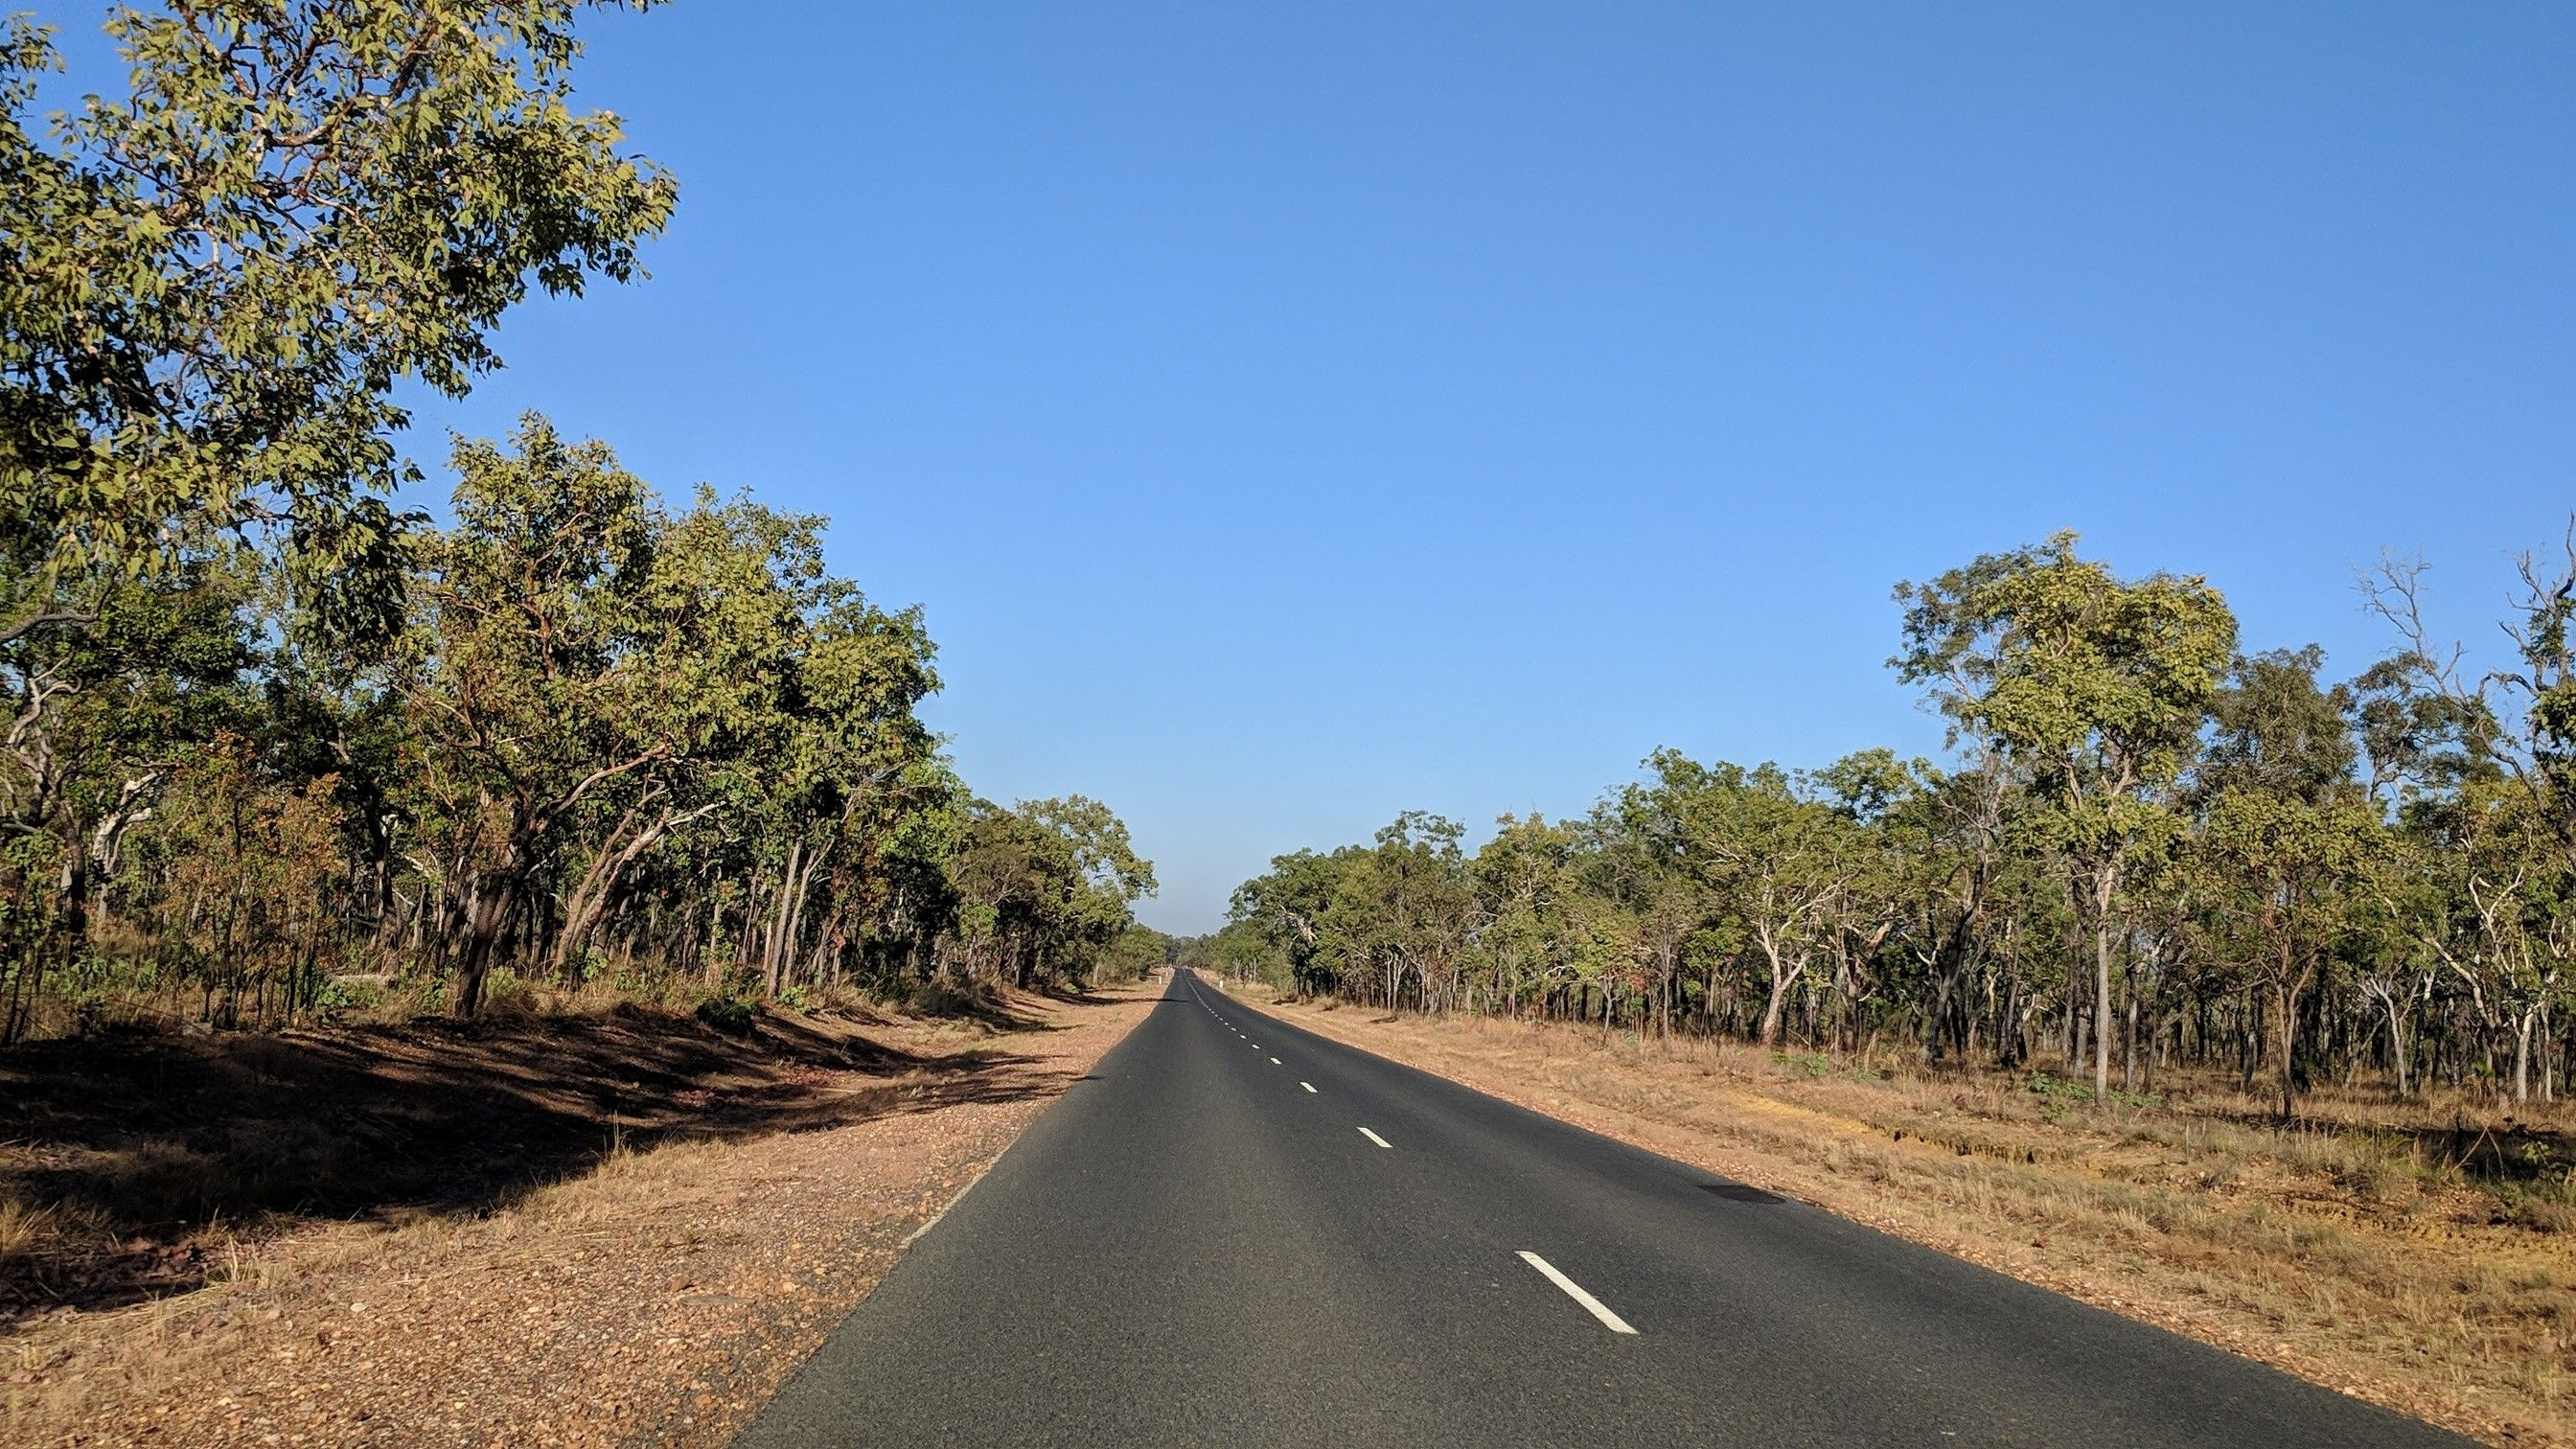 Unterwegs zum Litchfield National Park